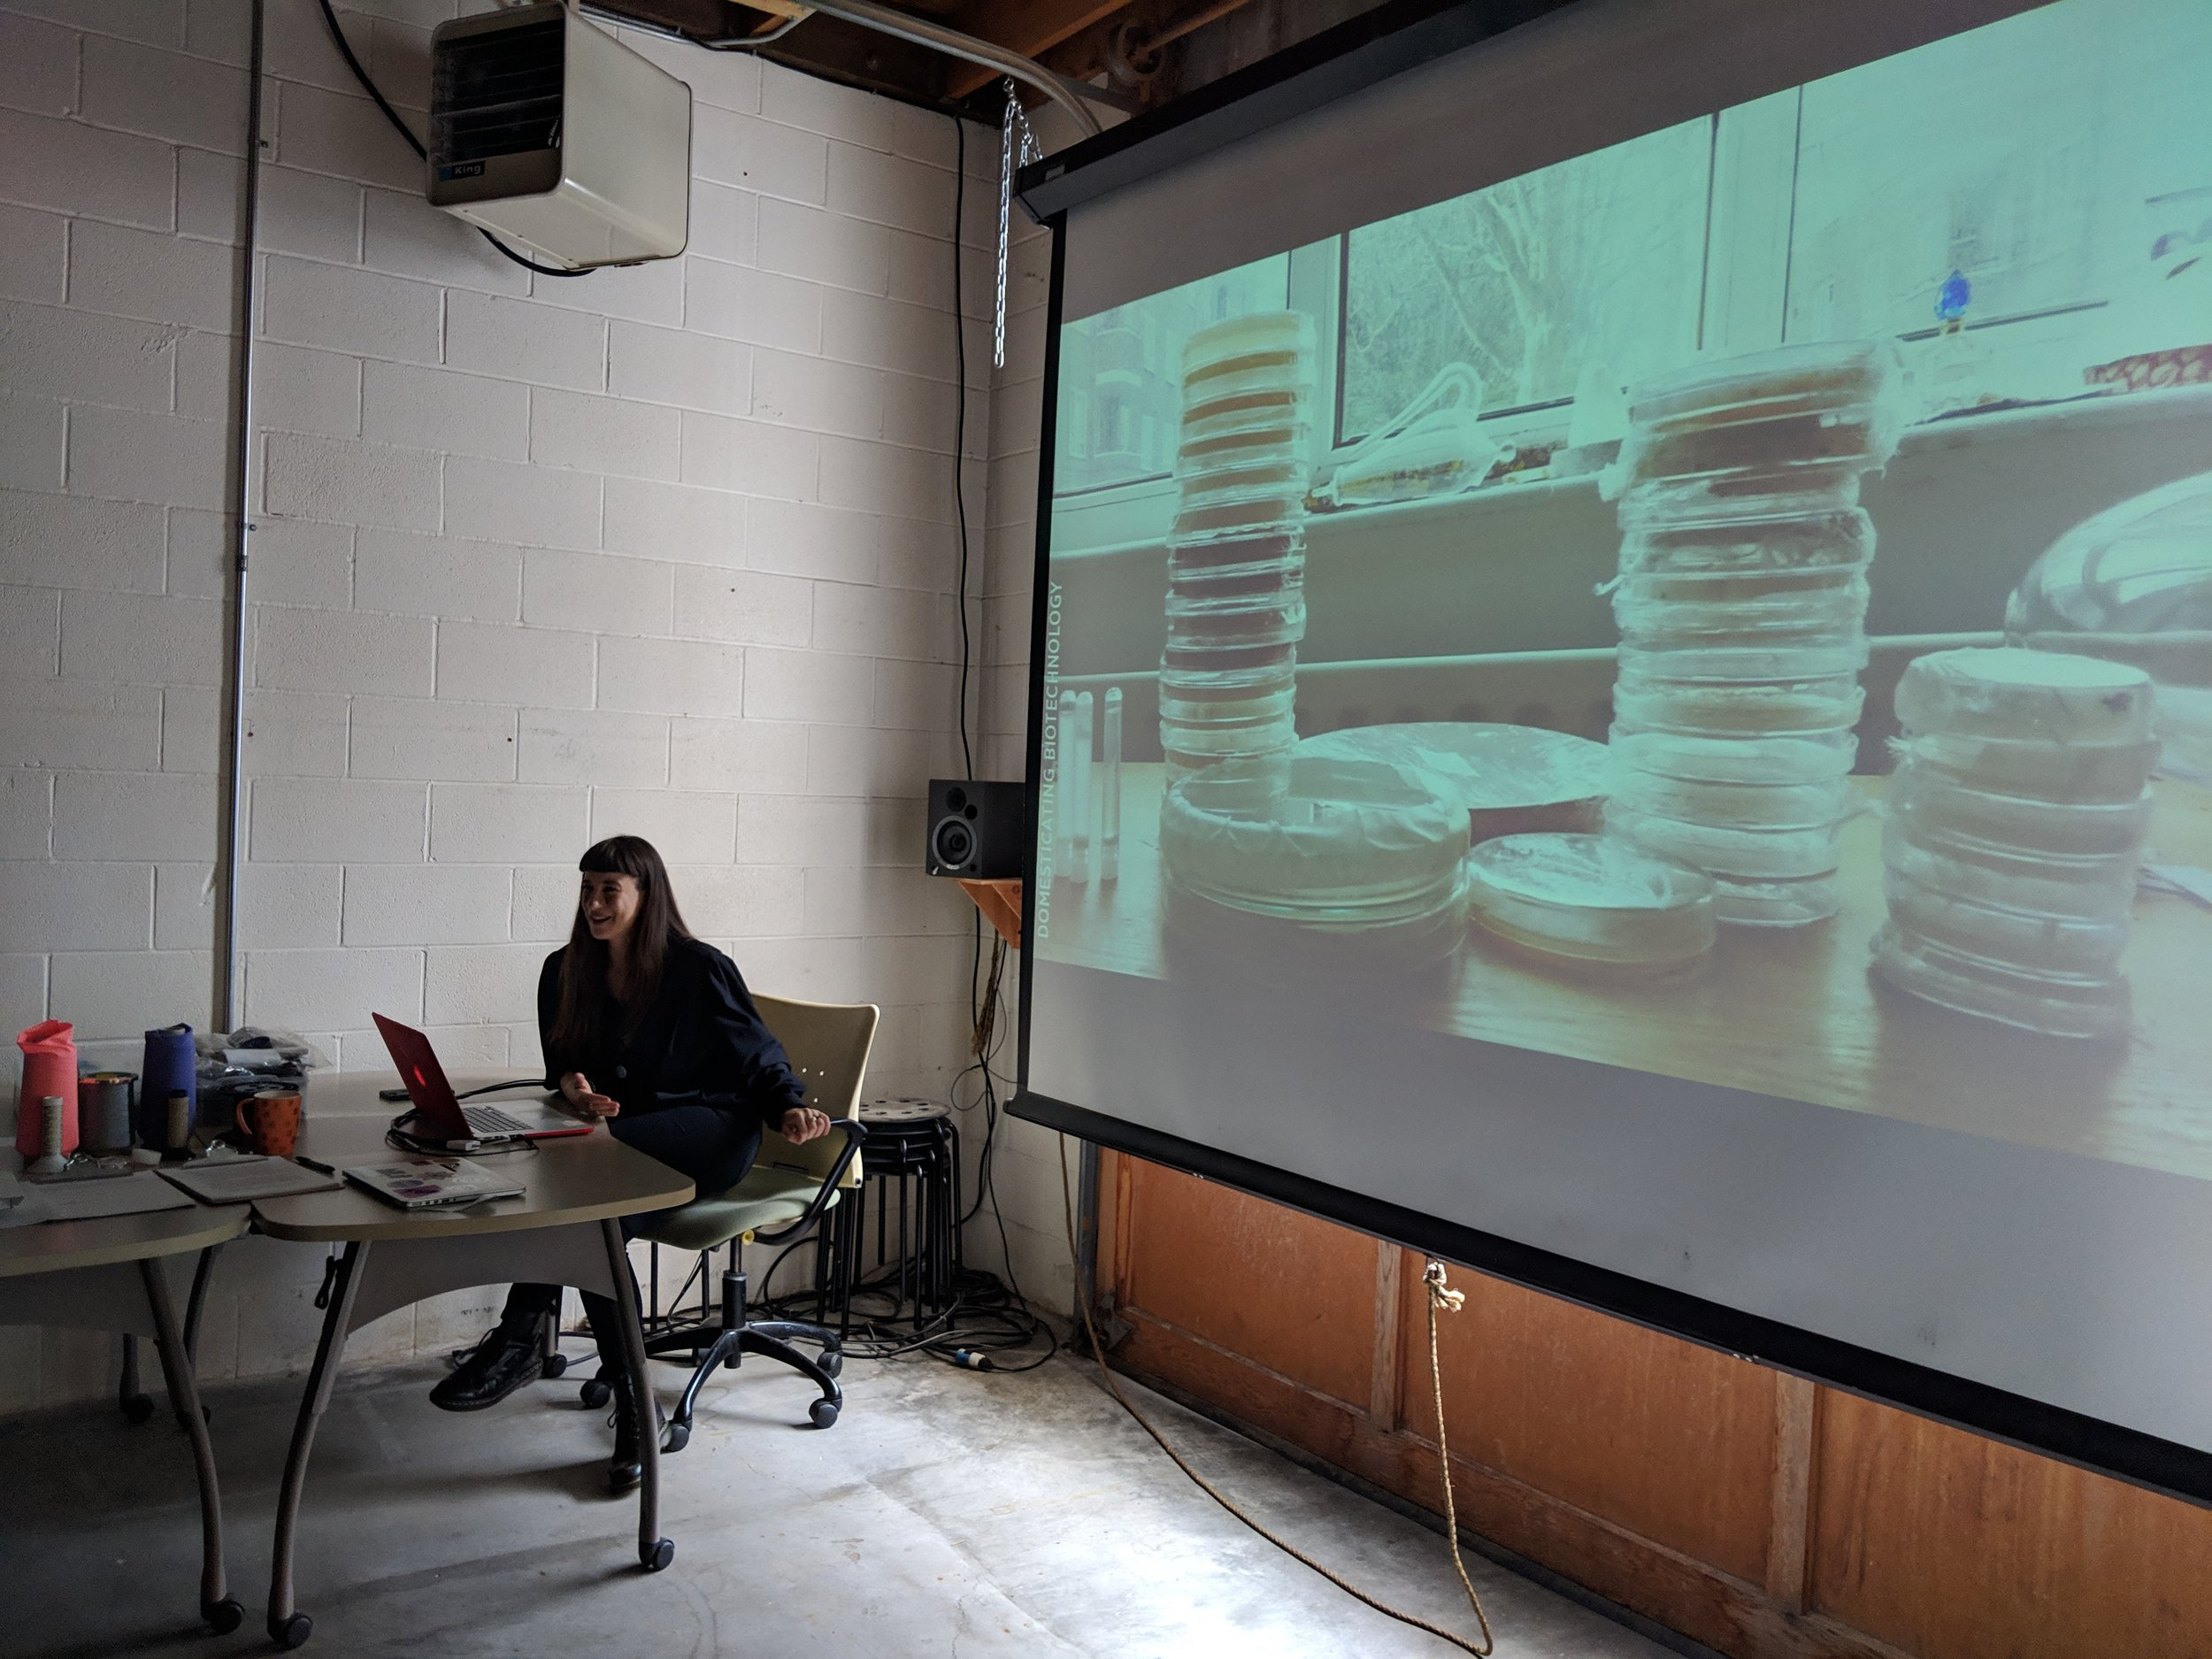 Giulia describing the process of growing kombucha leather in her apartment in London during her MFA at Saint Martins College.